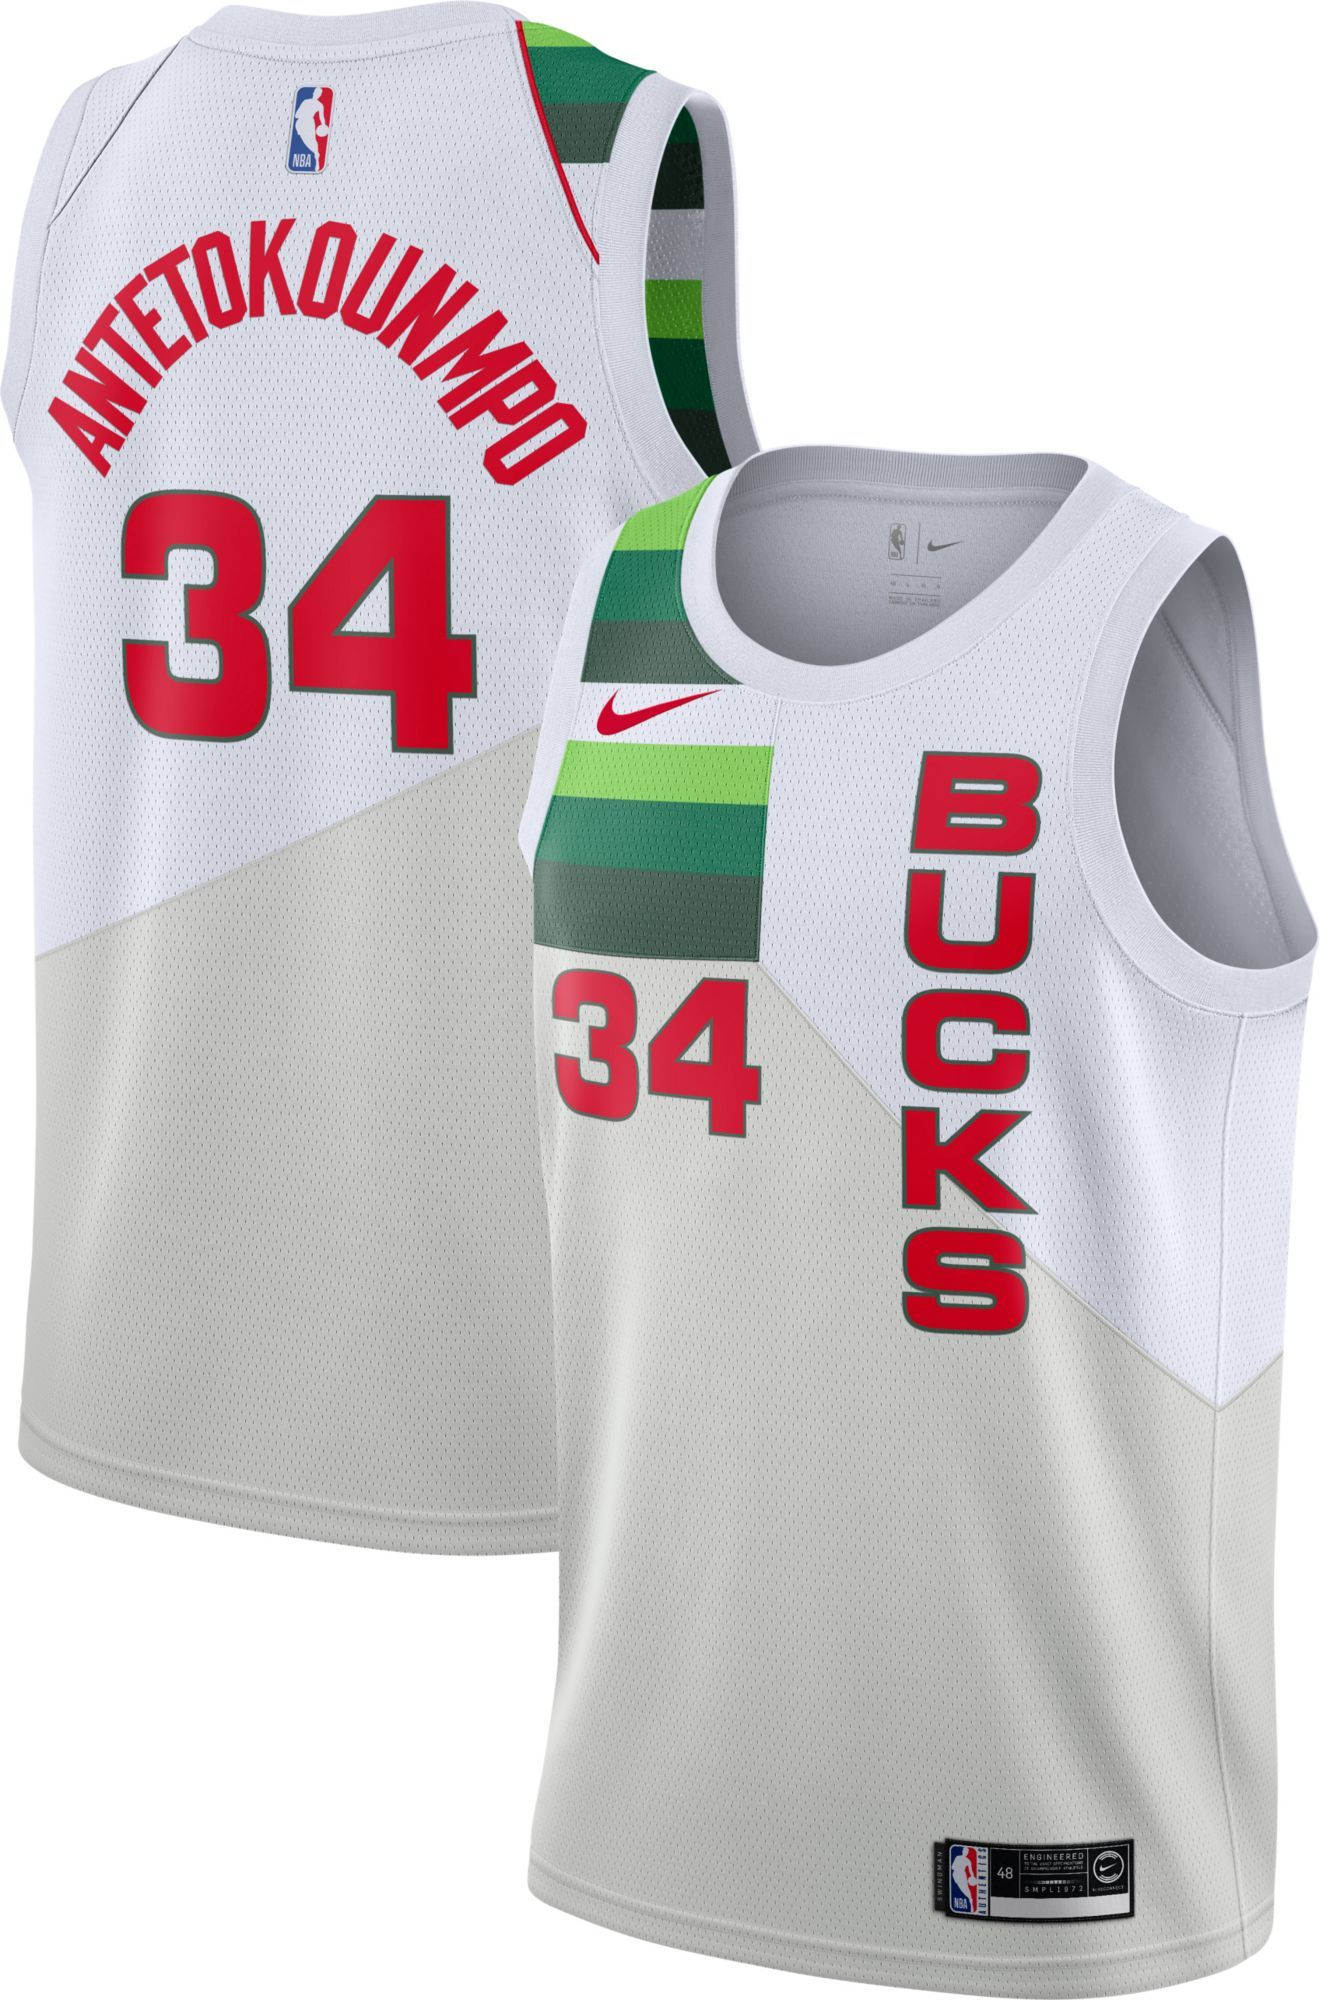 7a9d63a8f7b Nike Men's Milwaukee Bucks Giannis Antetokounmpo Dri-FIT Earned Edition  Swingman Jersey, Size: Medium, White